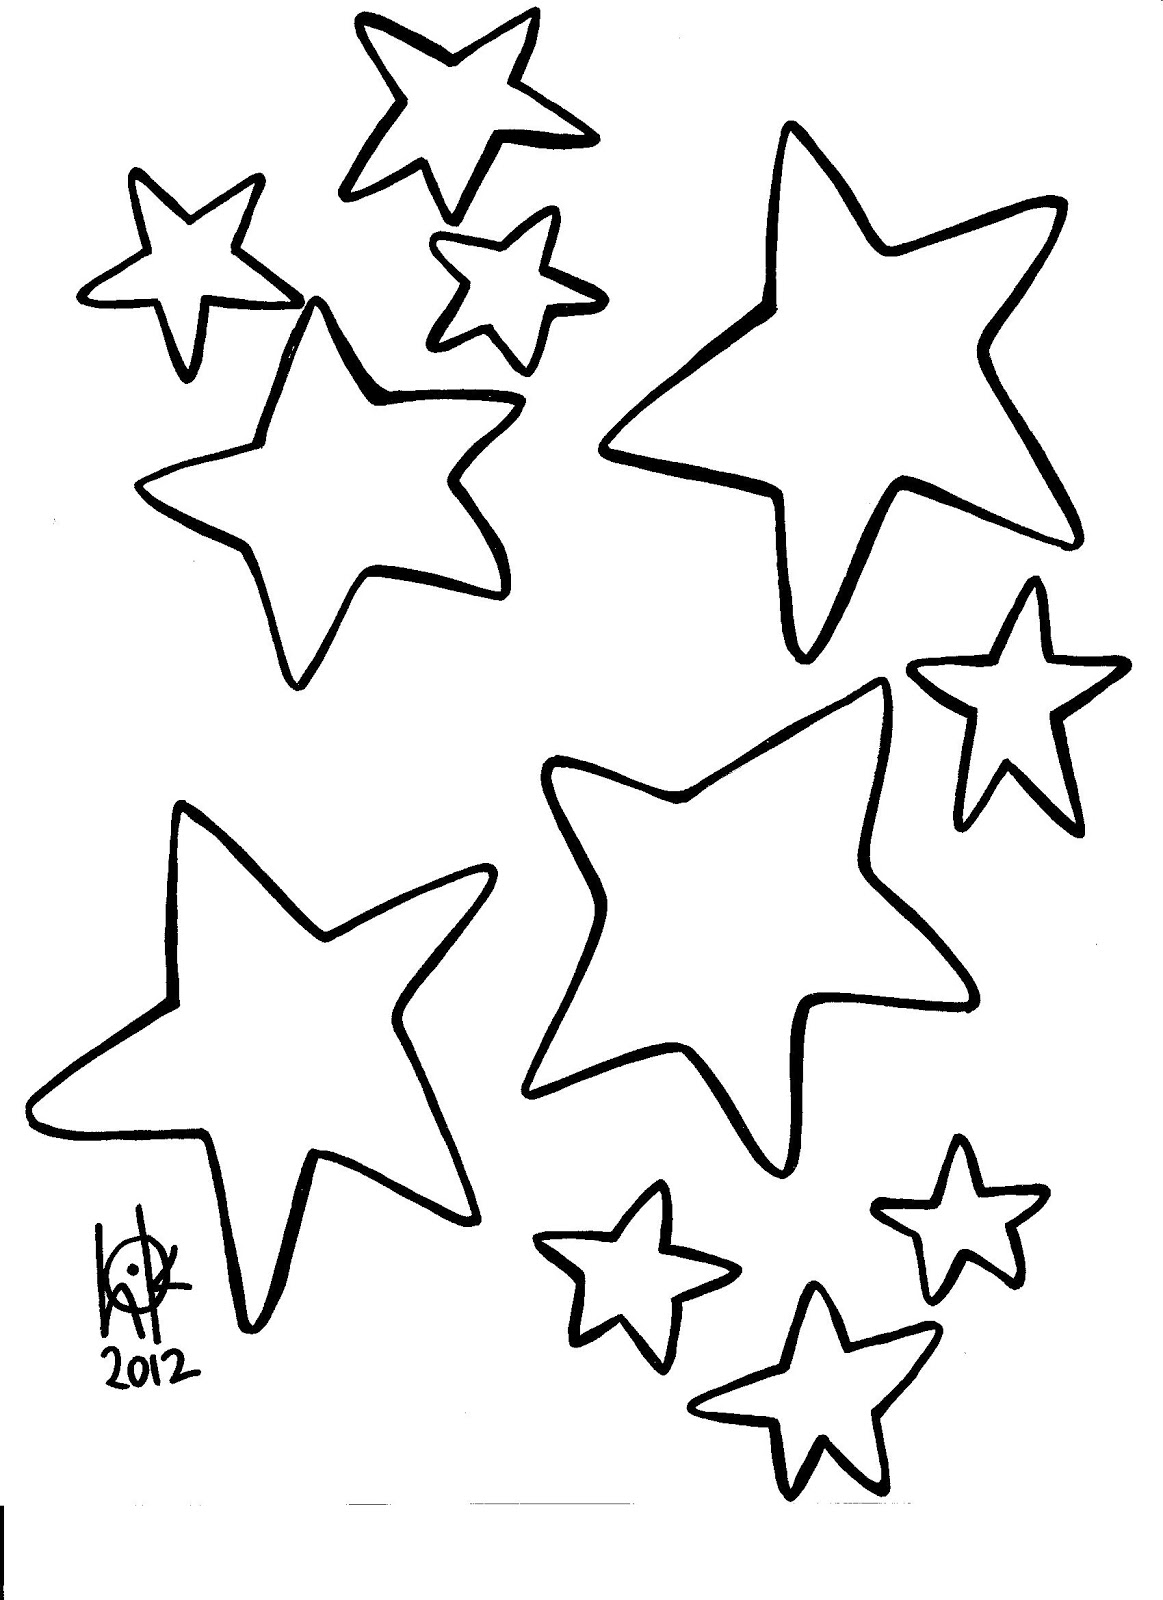 printable pictures of stars 60 star coloring pages customize and print pdf pictures printable of stars